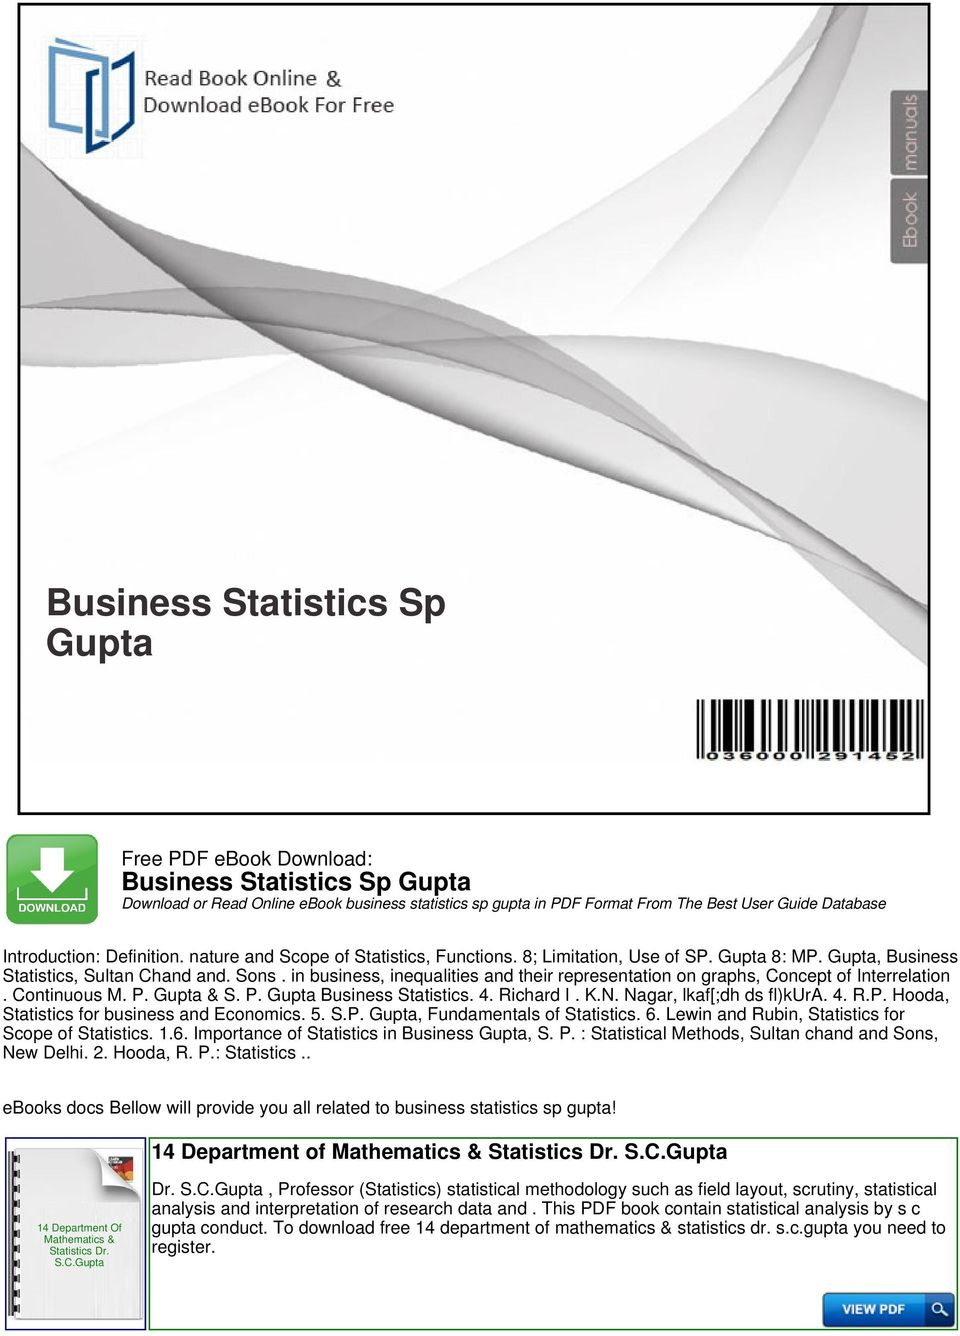 Business Statistics Sp Gupta - PDF